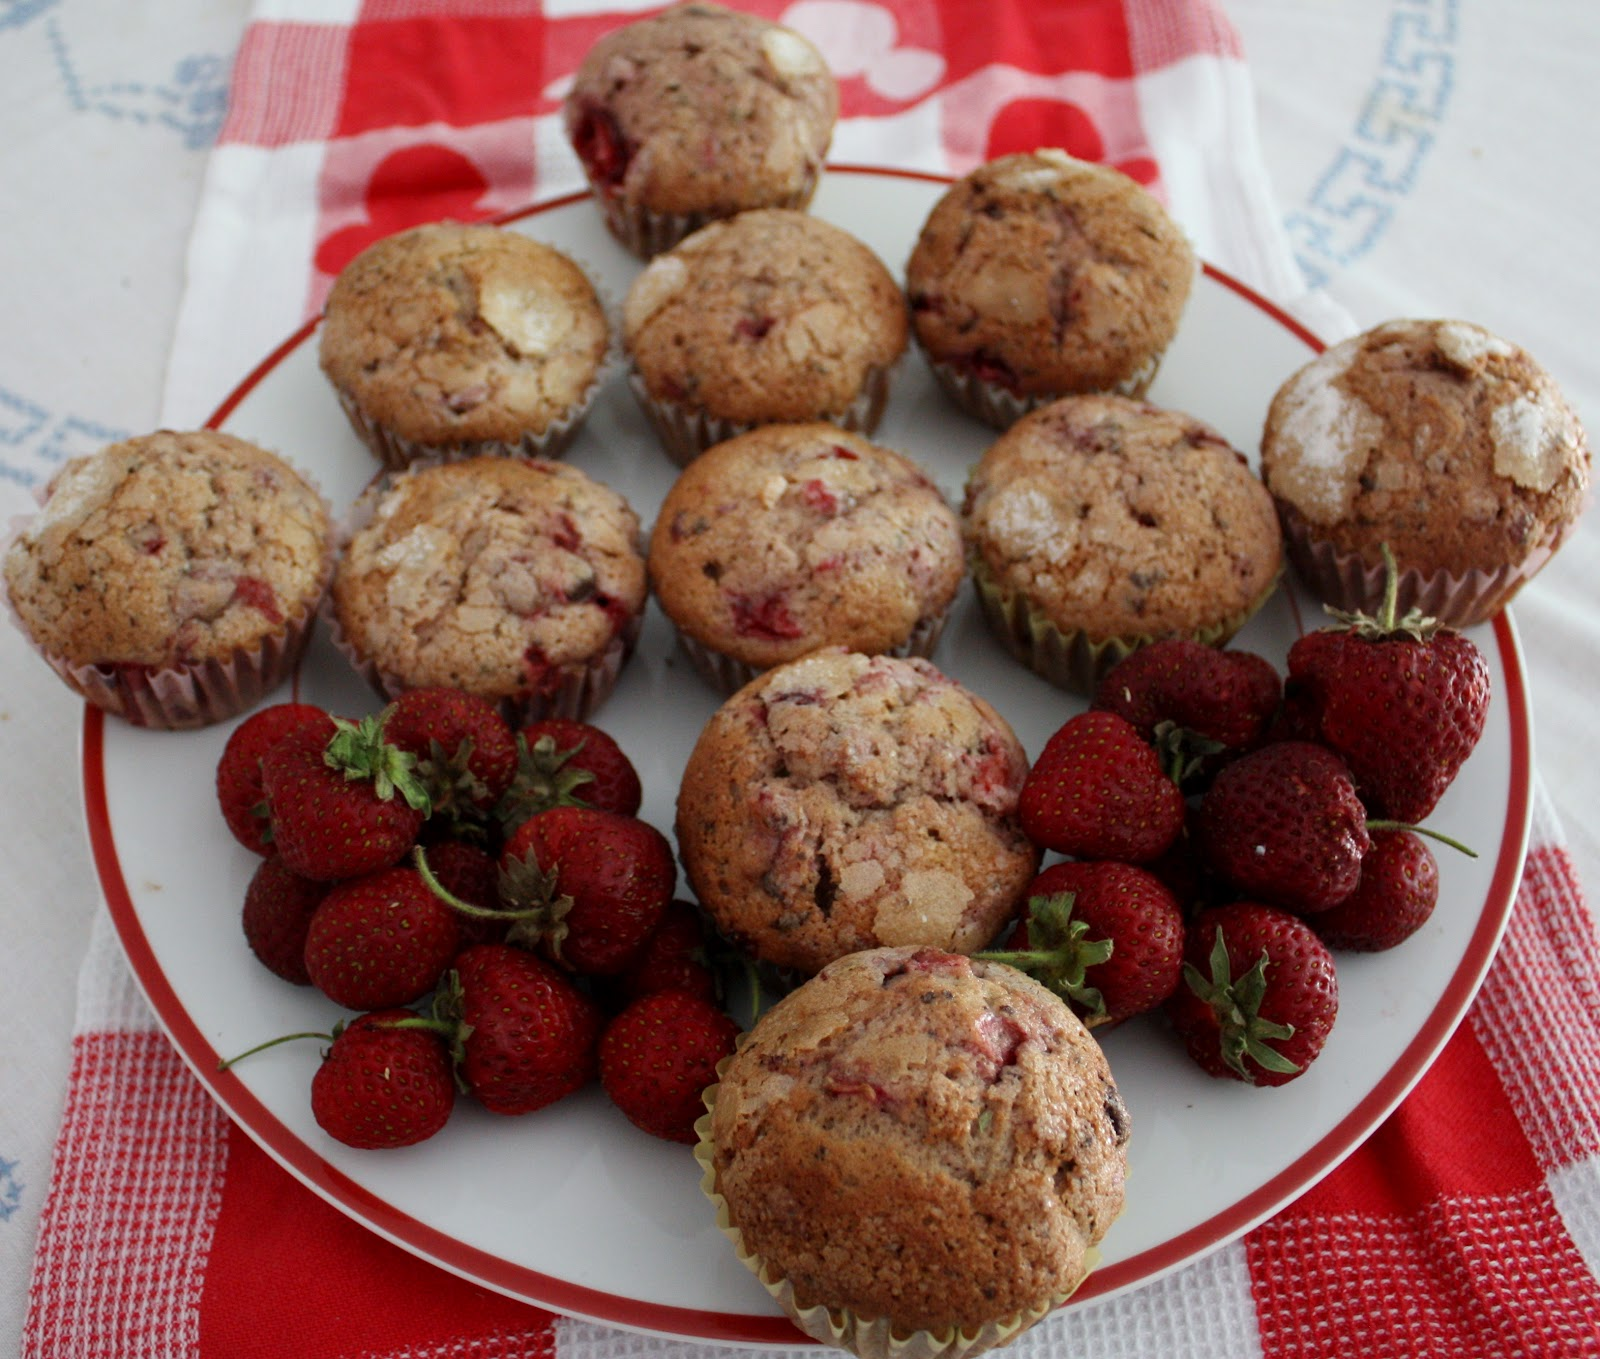 Best of Long Island and Central Florida: Strawberry Muffins